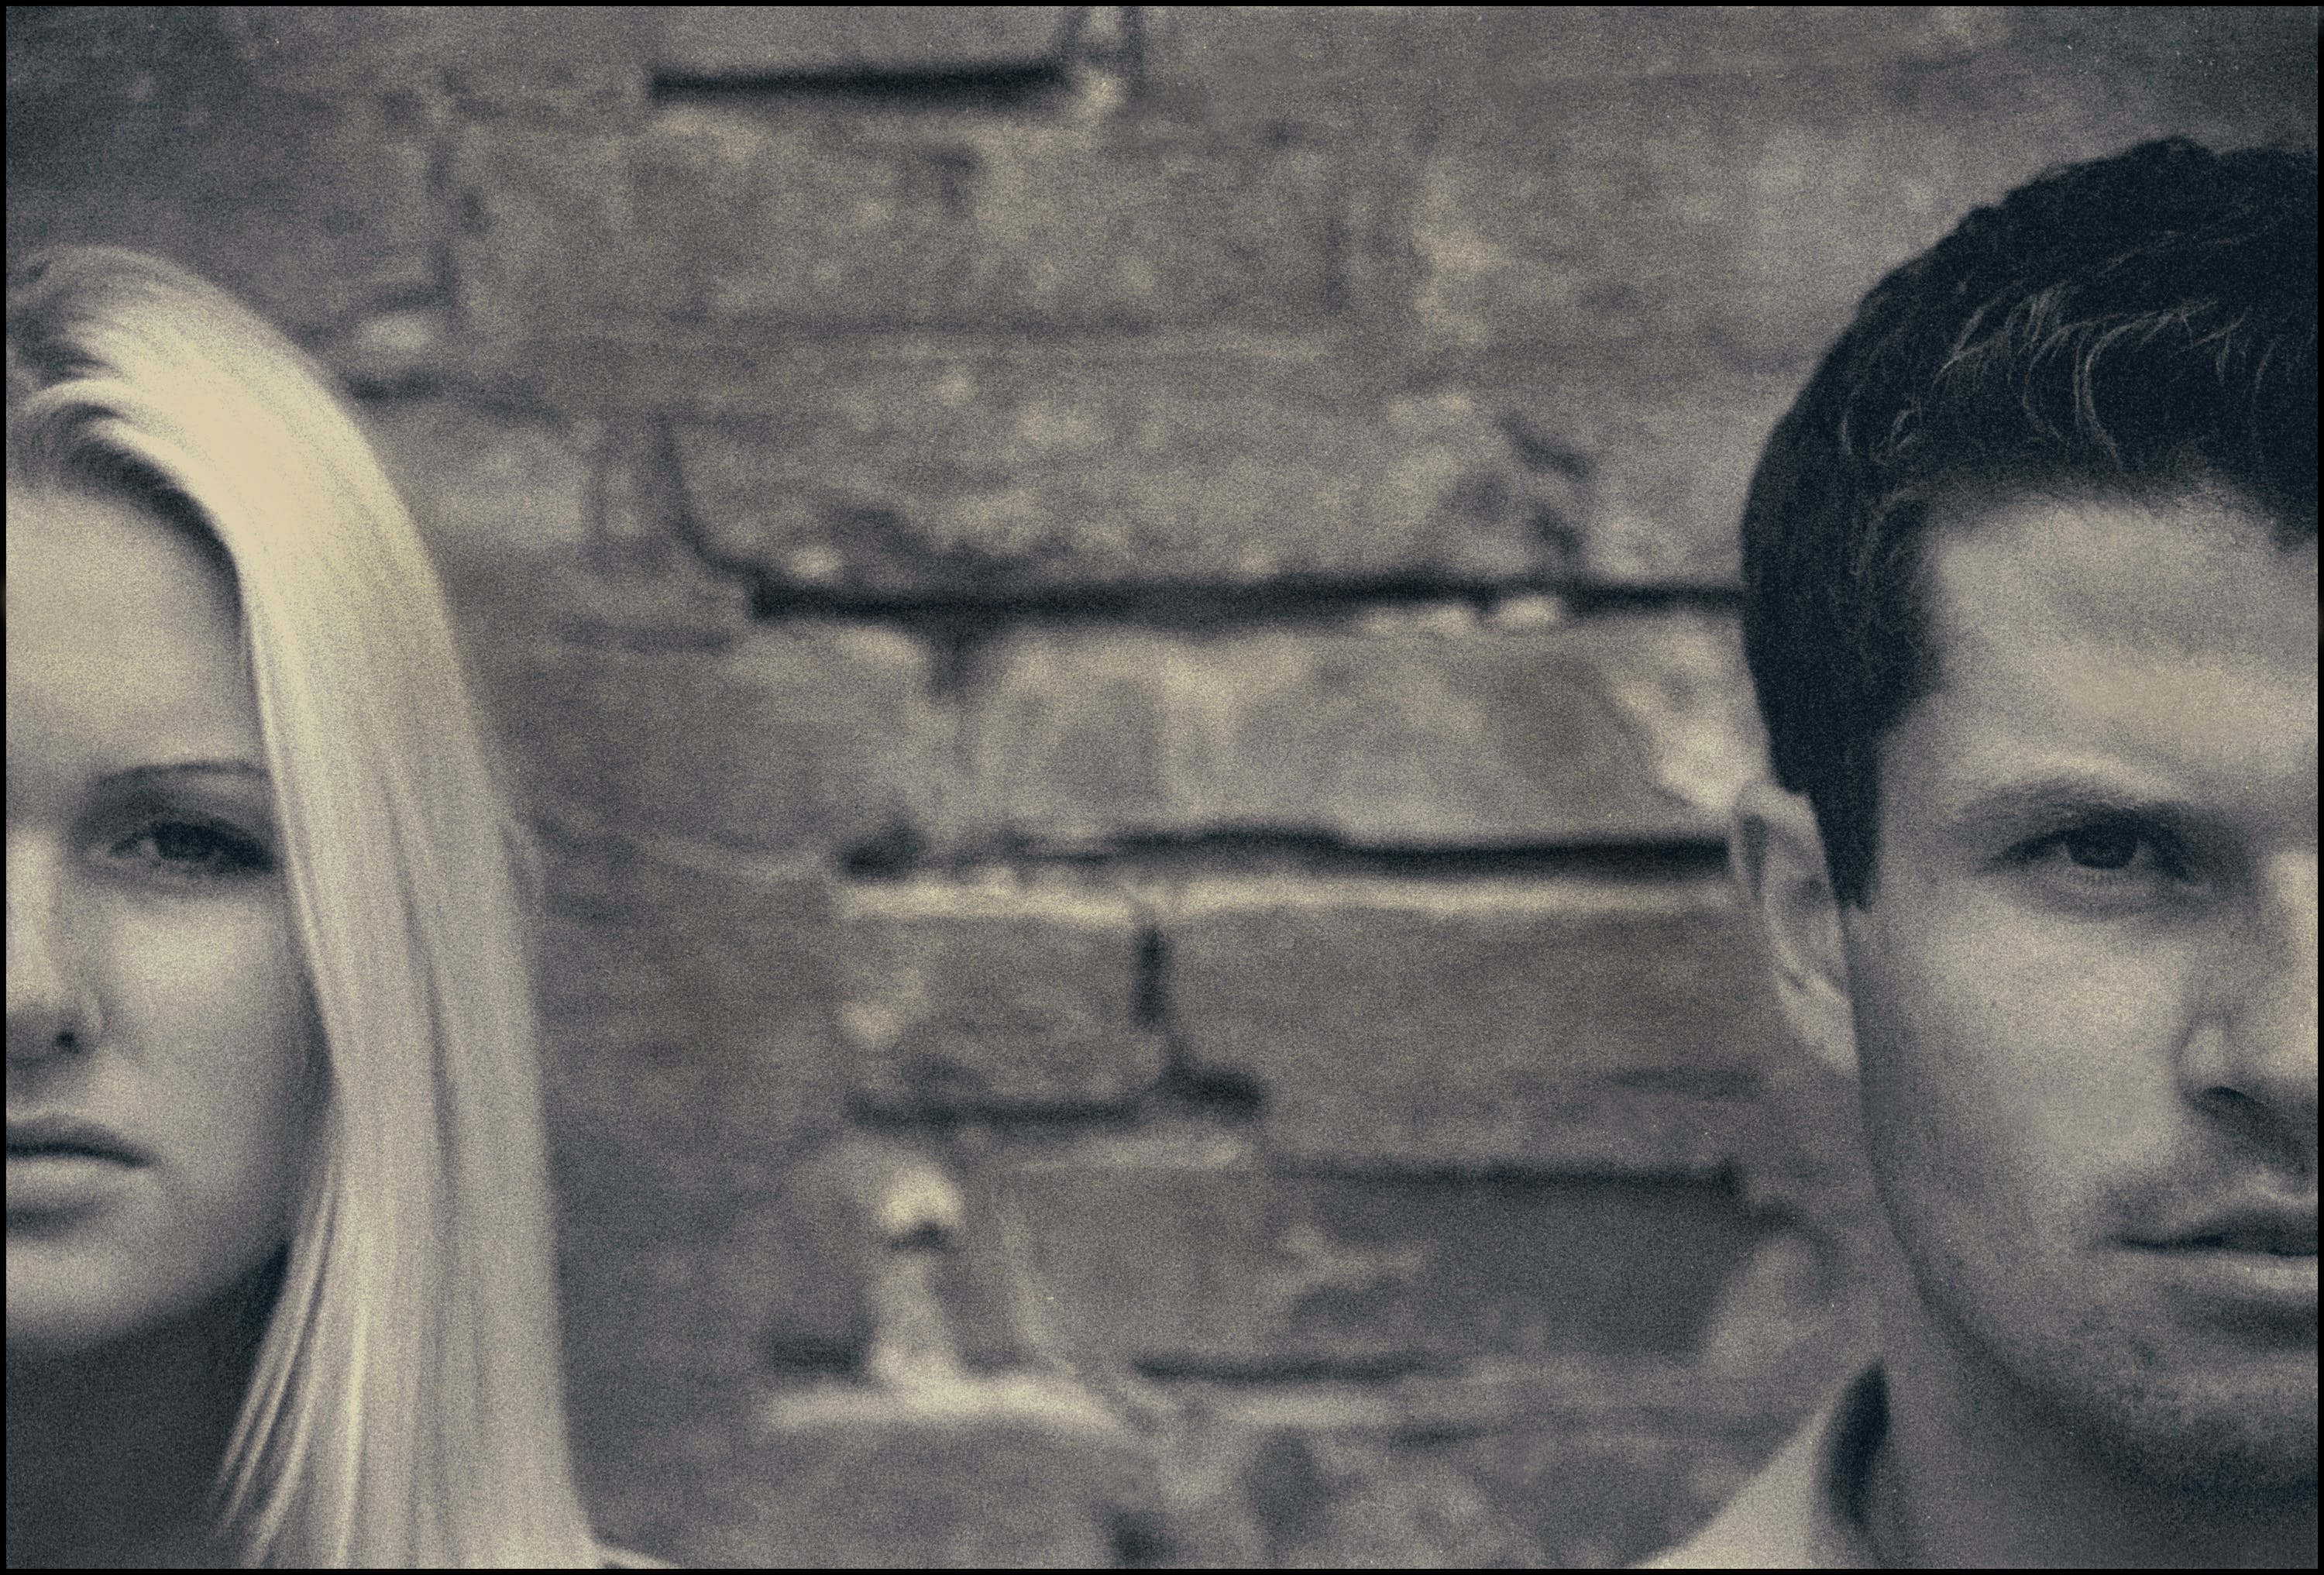 Grayscale Photo of Man and Woman